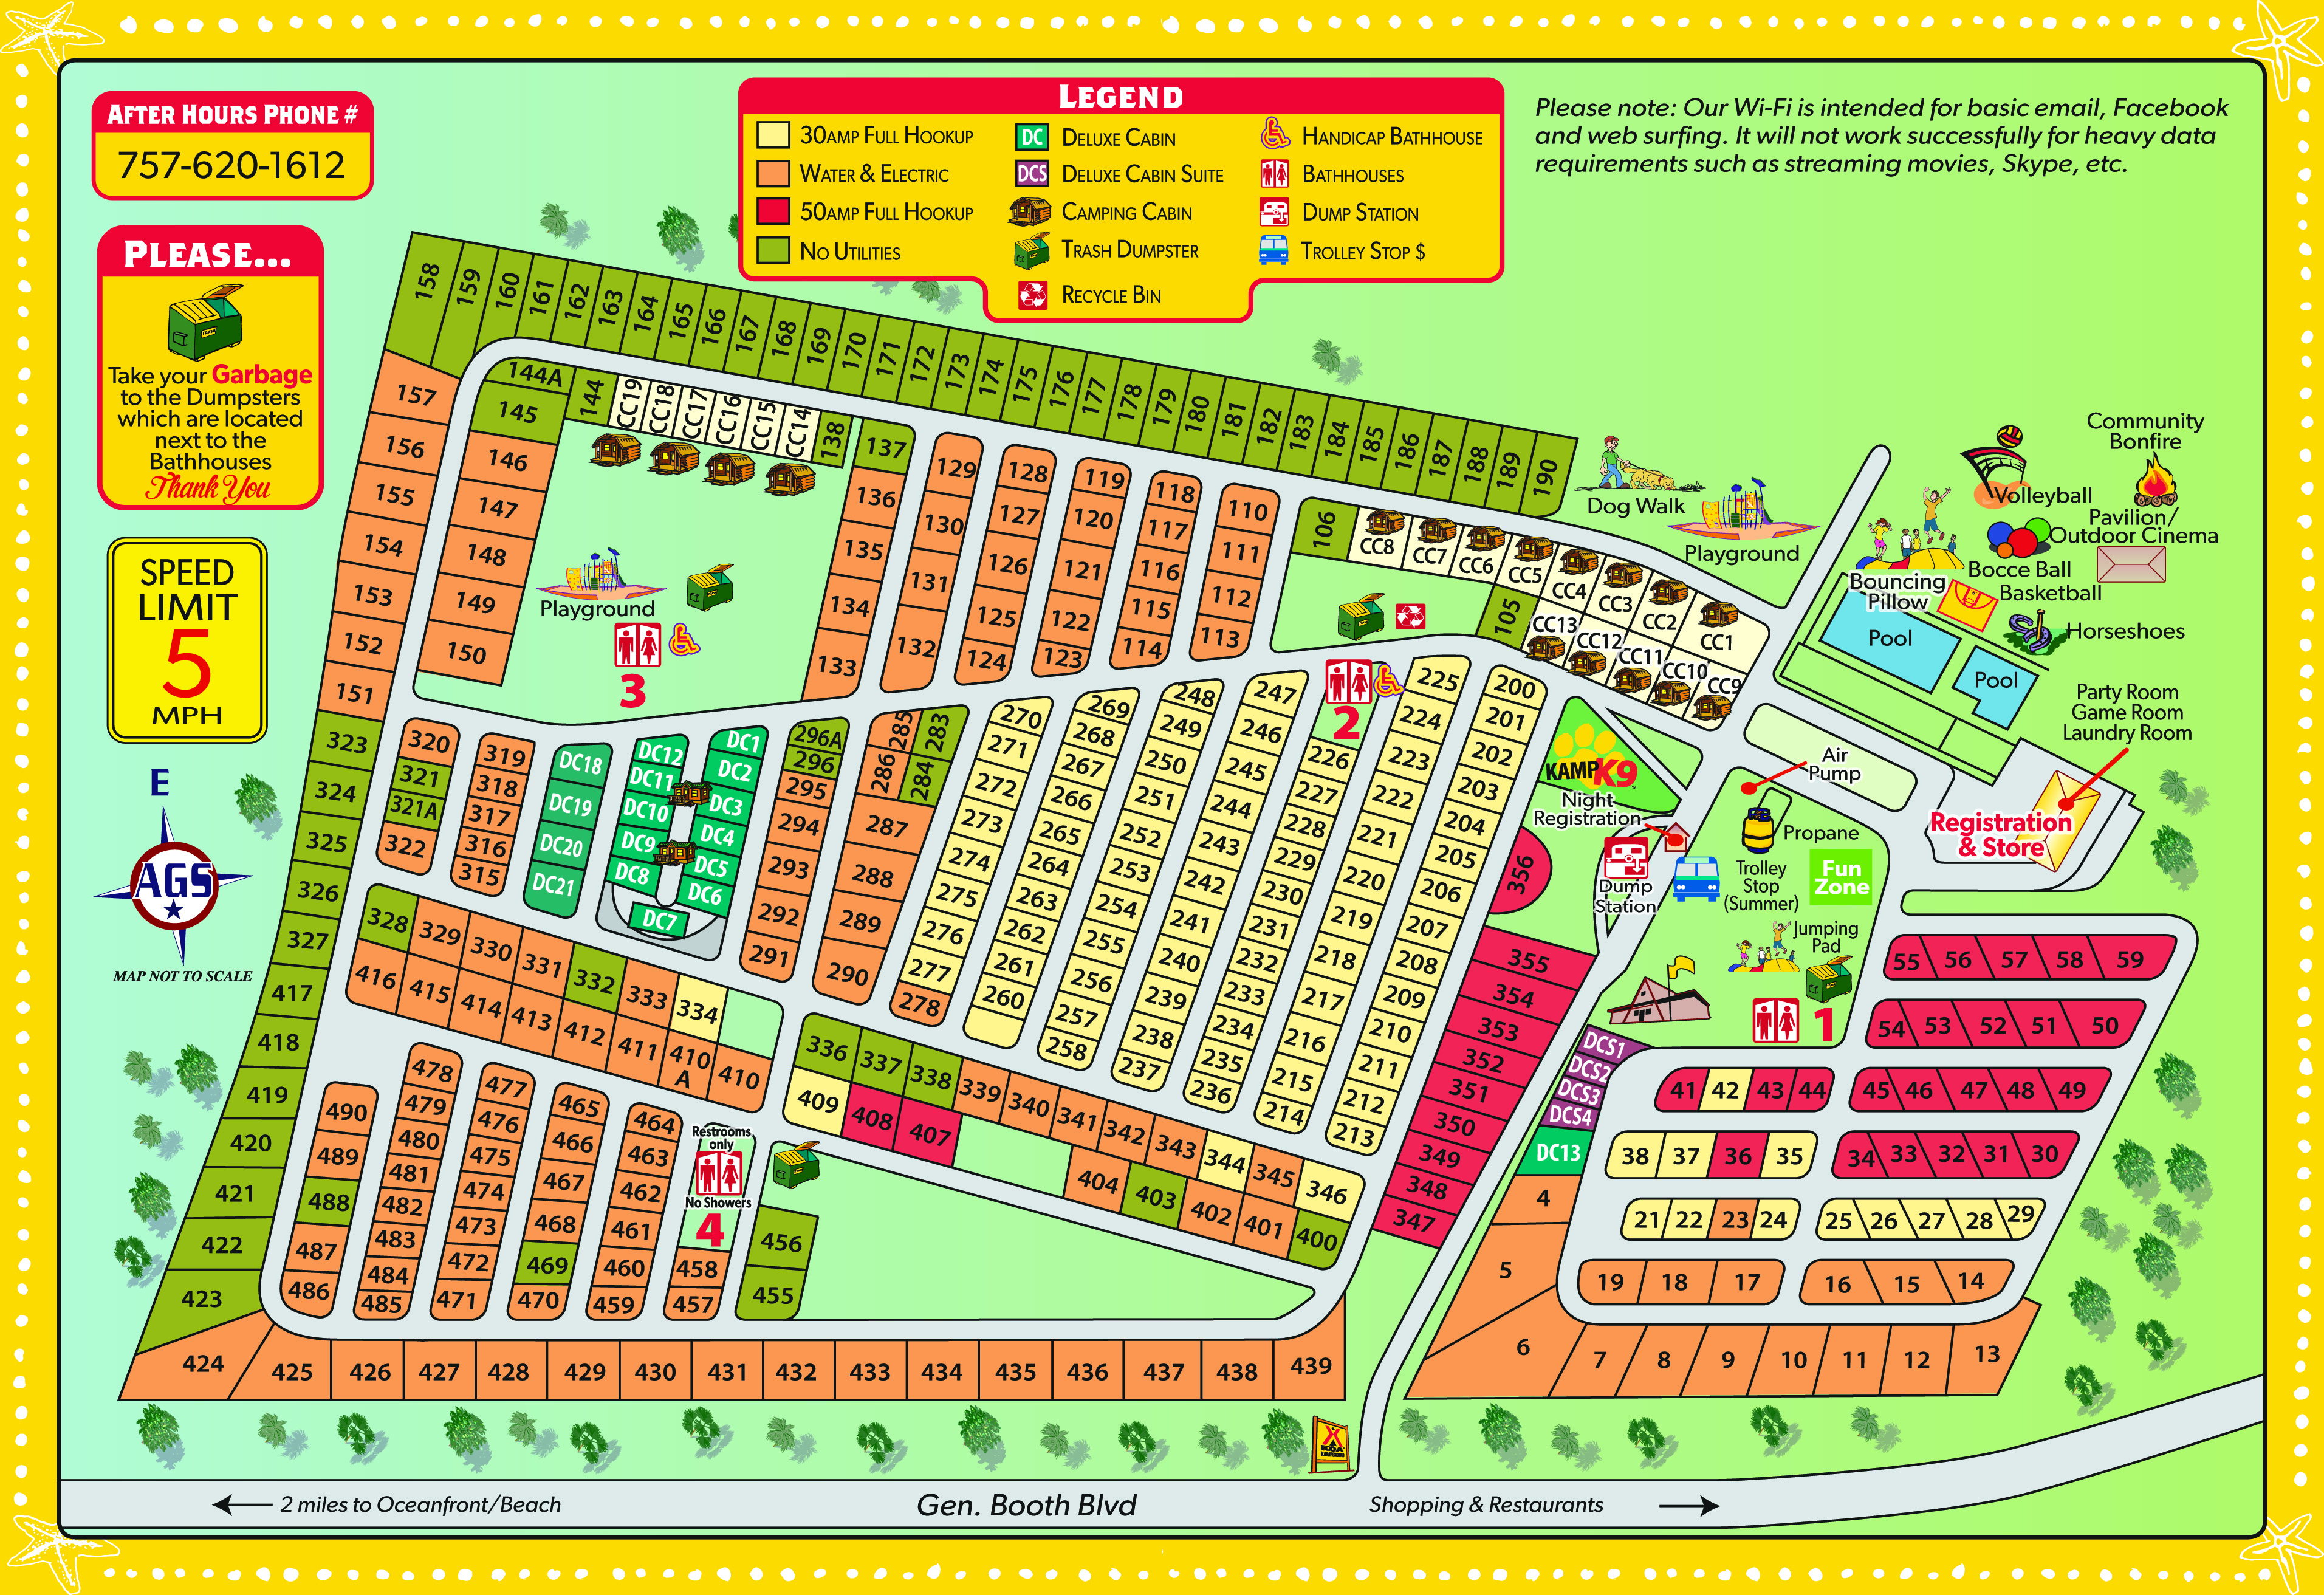 ... attractions and events for the Virginia Beach KOA RV Park in Virginia